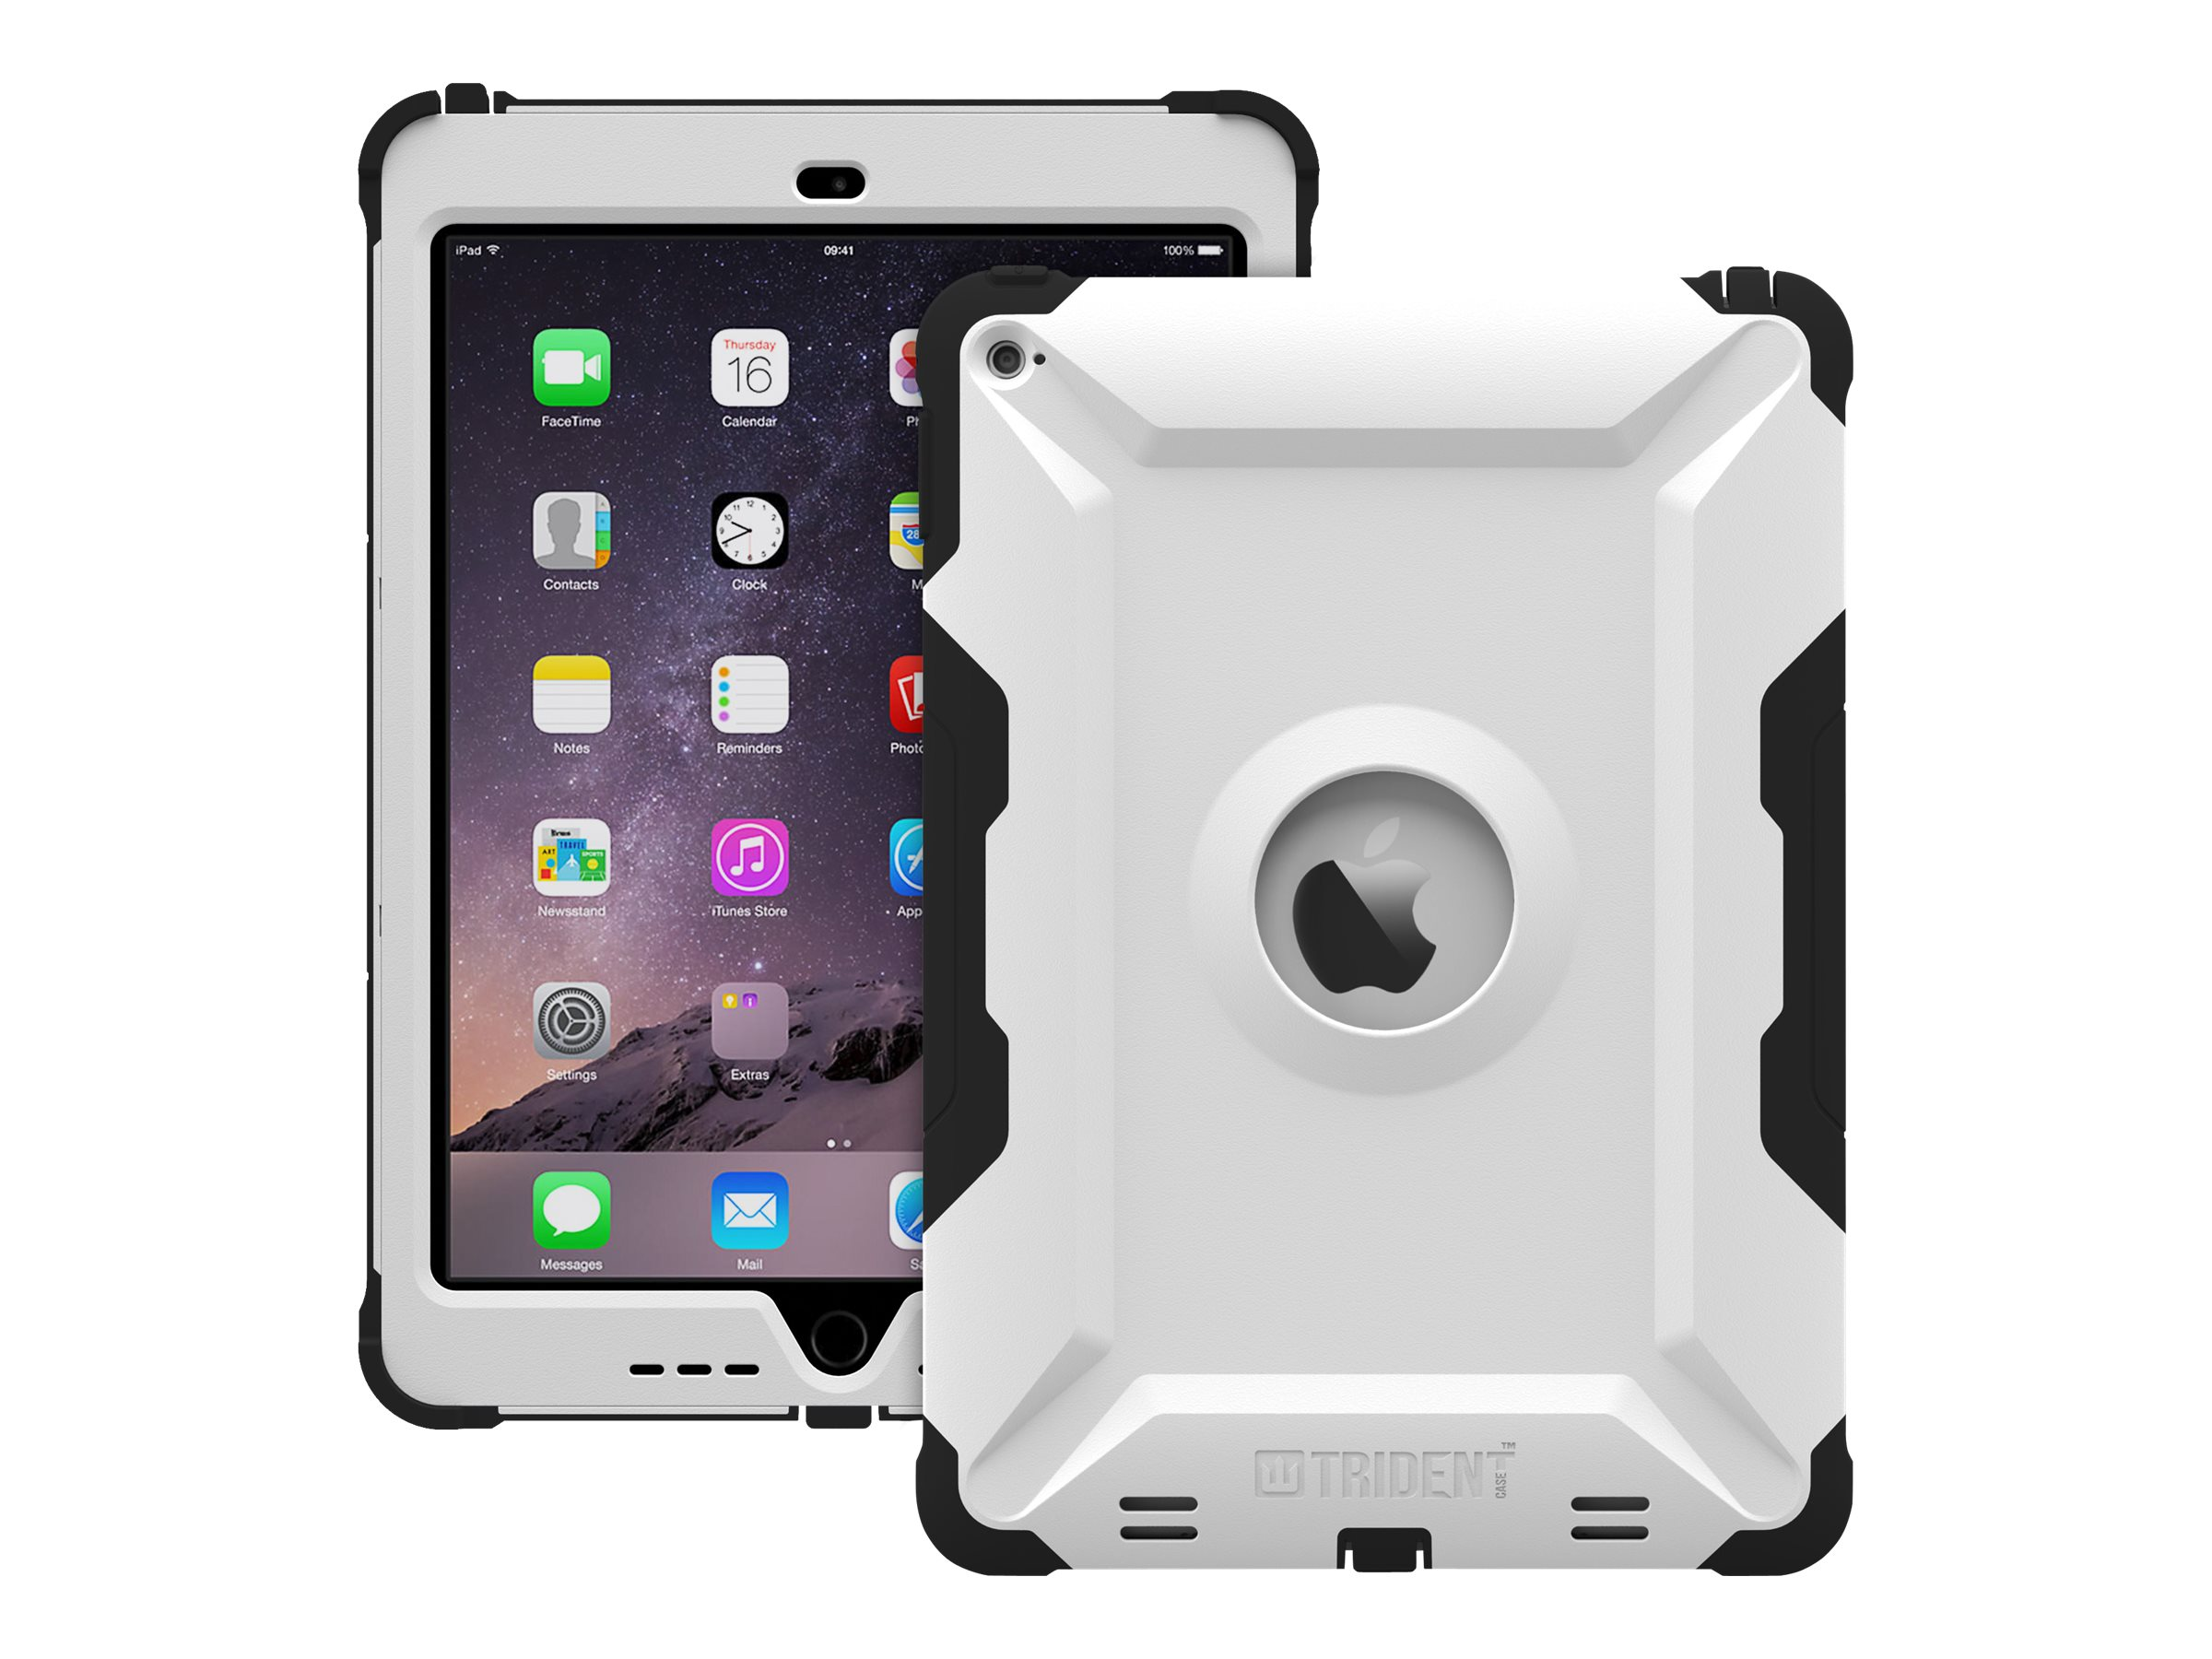 Trident Case 2015 Kraken AMS Case for iPad Air 2, White, KN-APIPA2-WT000, 18401831, Carrying Cases - Tablets & eReaders